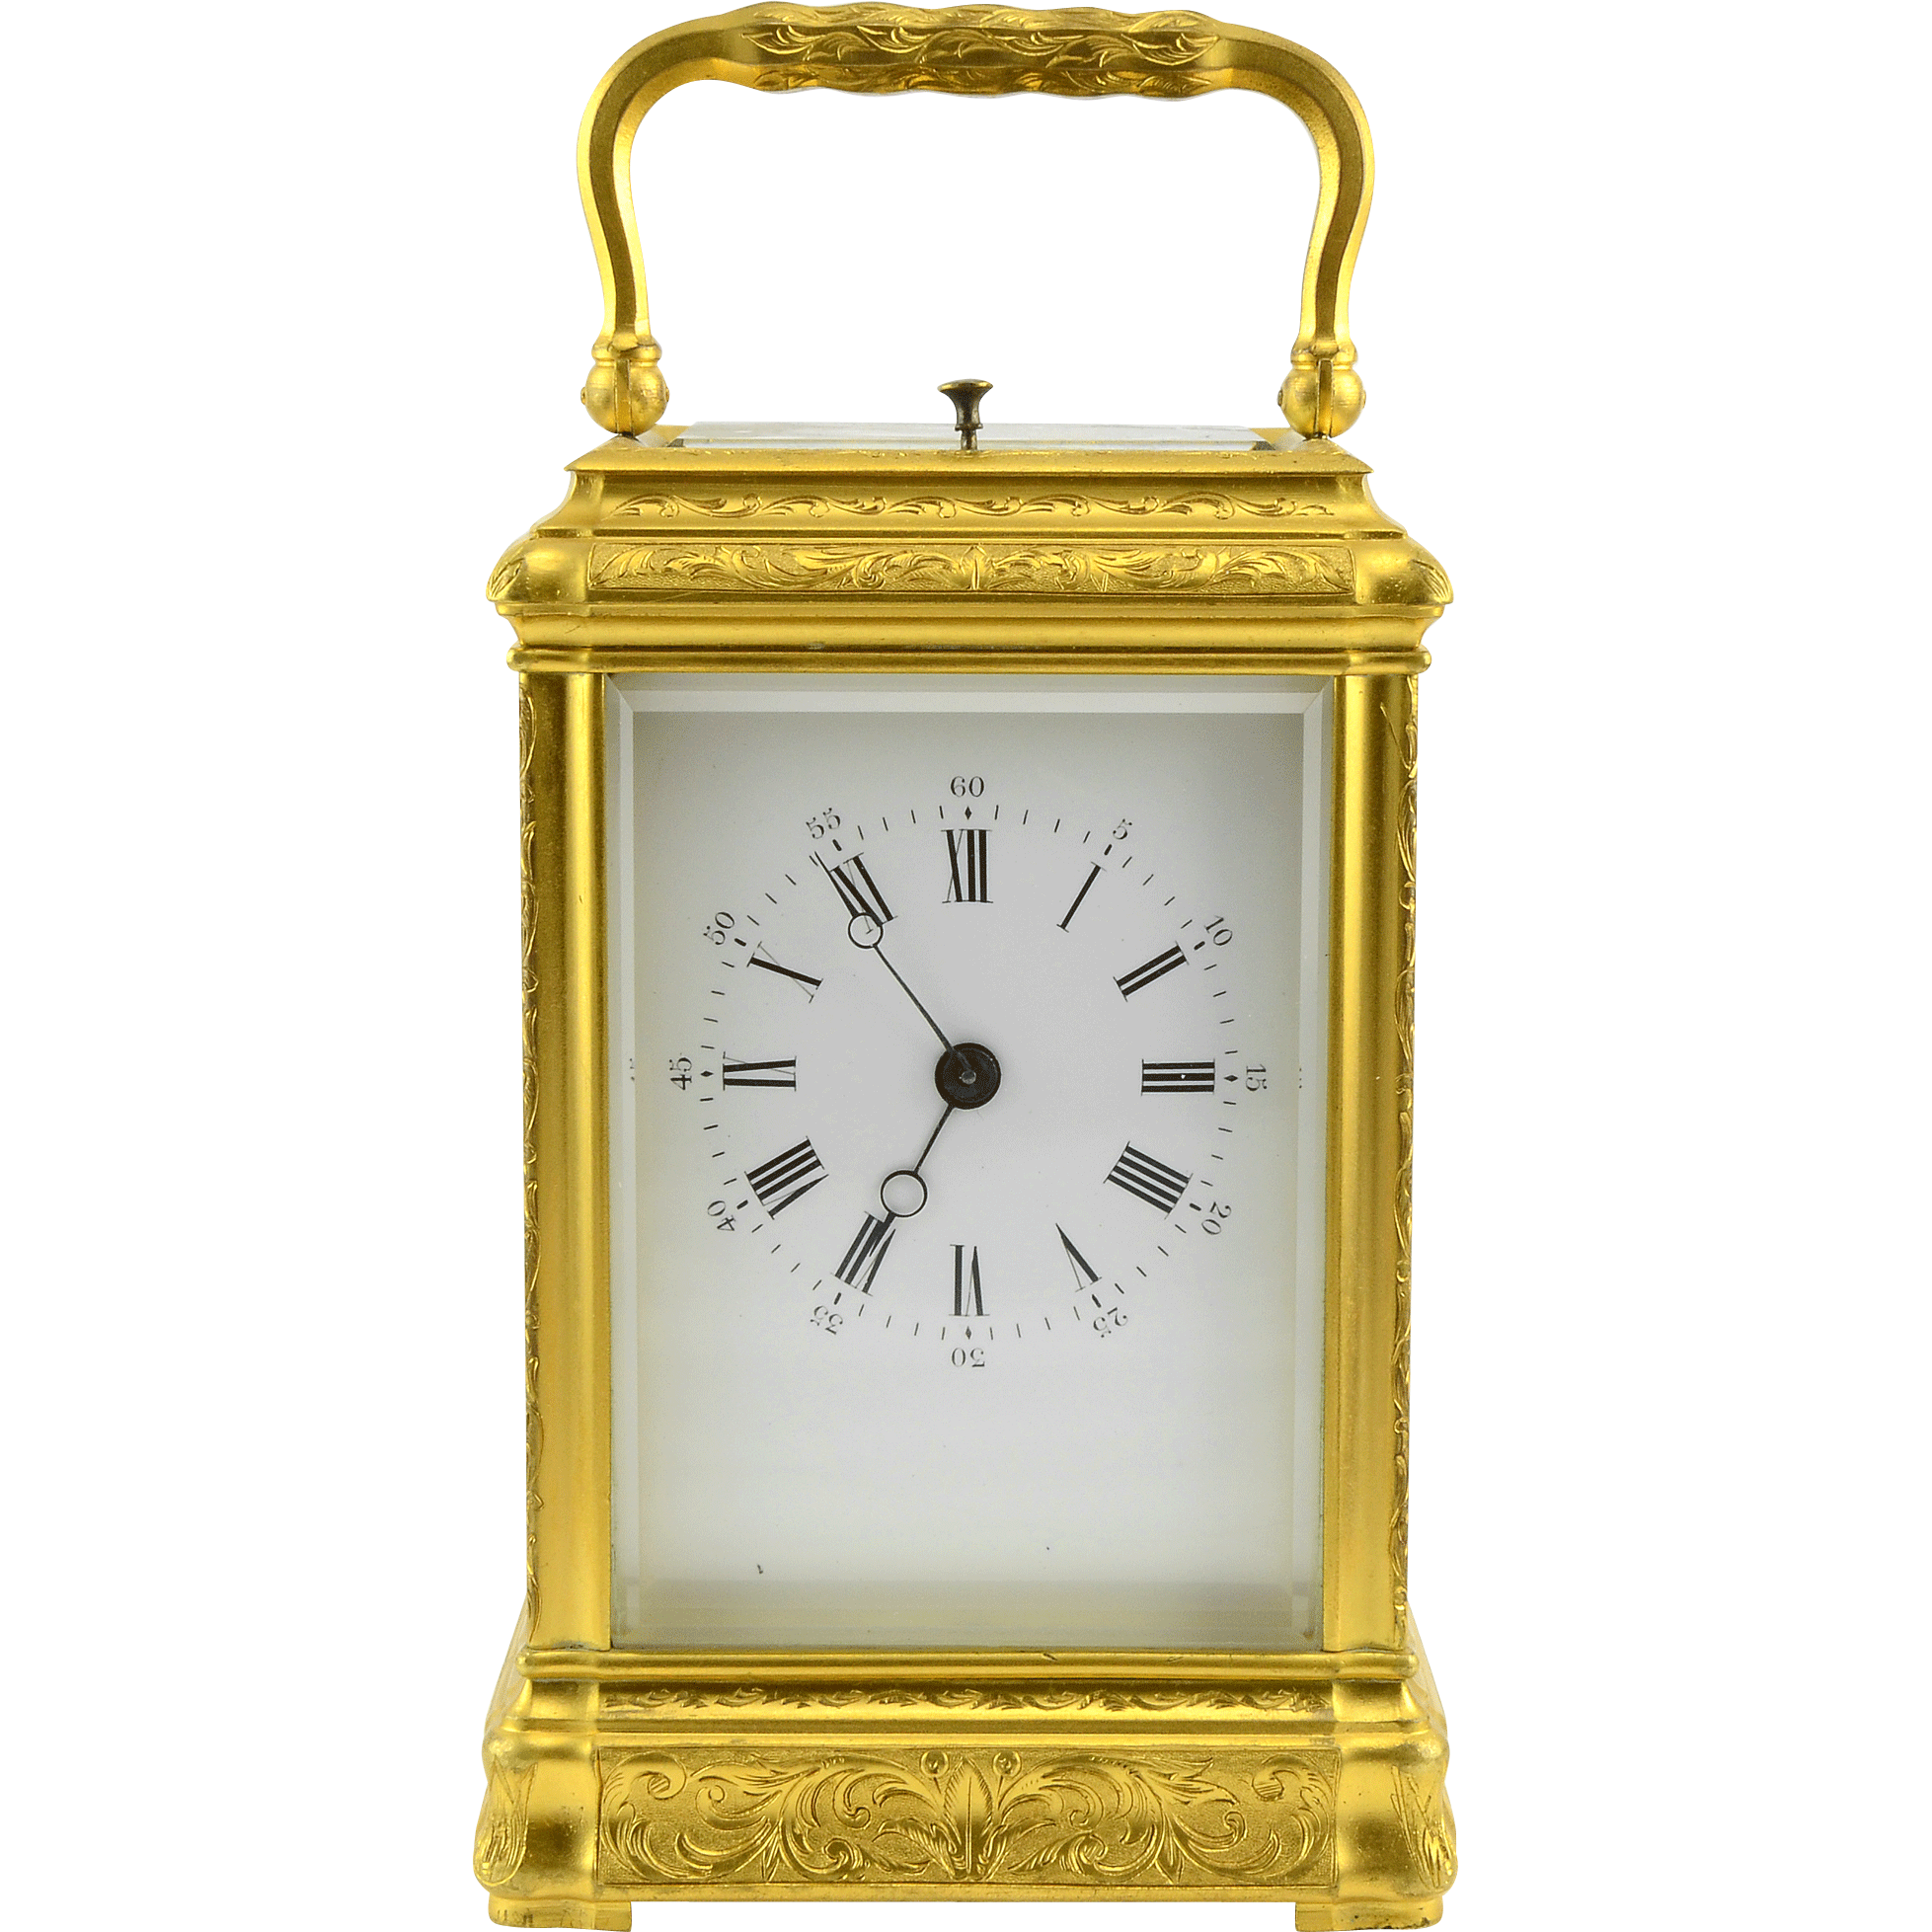 French Carriage Clock in Gilt Gorge Case